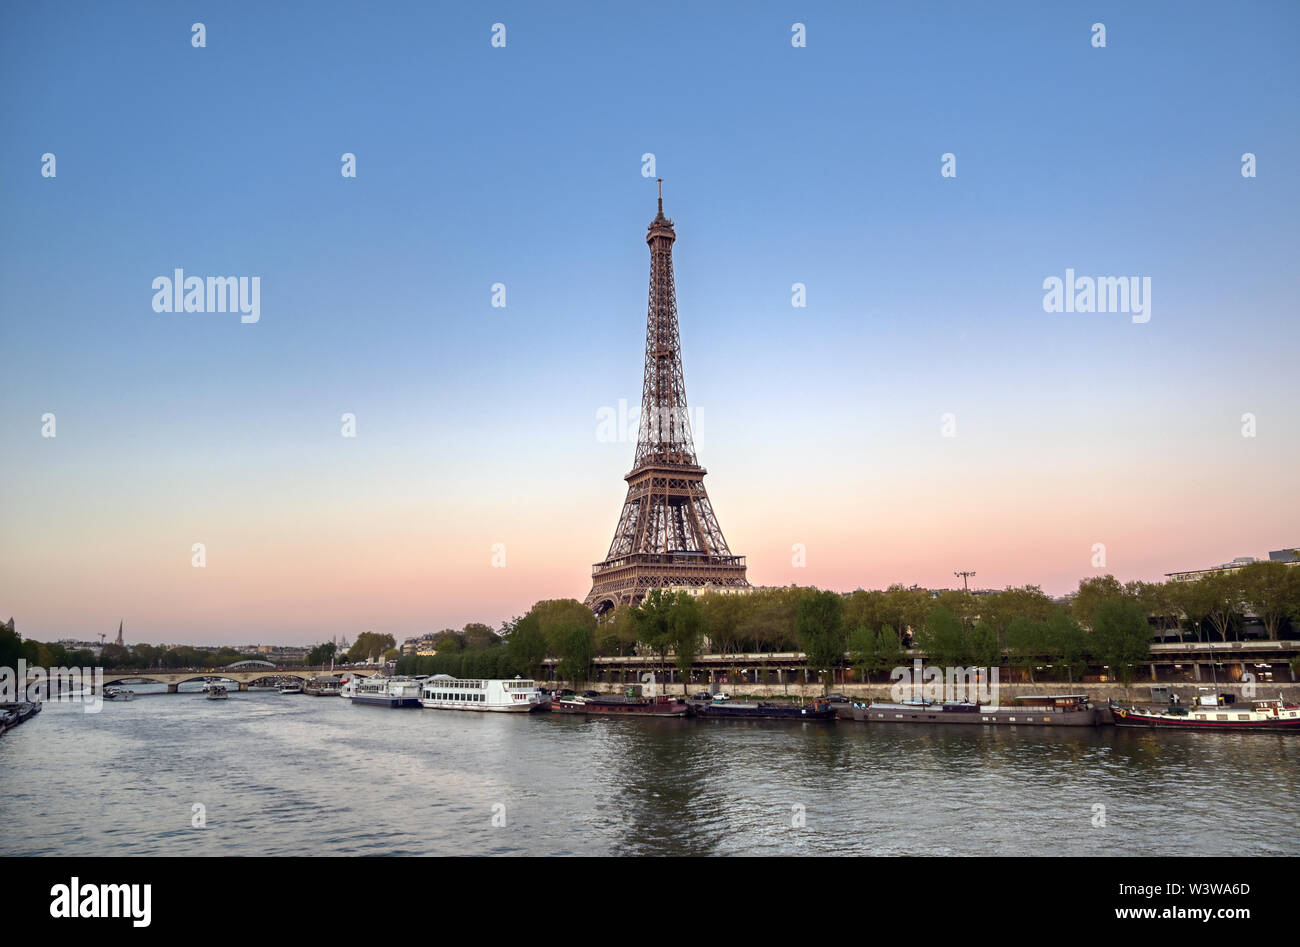 The Eiffel Tower across the River Seine in Paris, France. Stock Photo